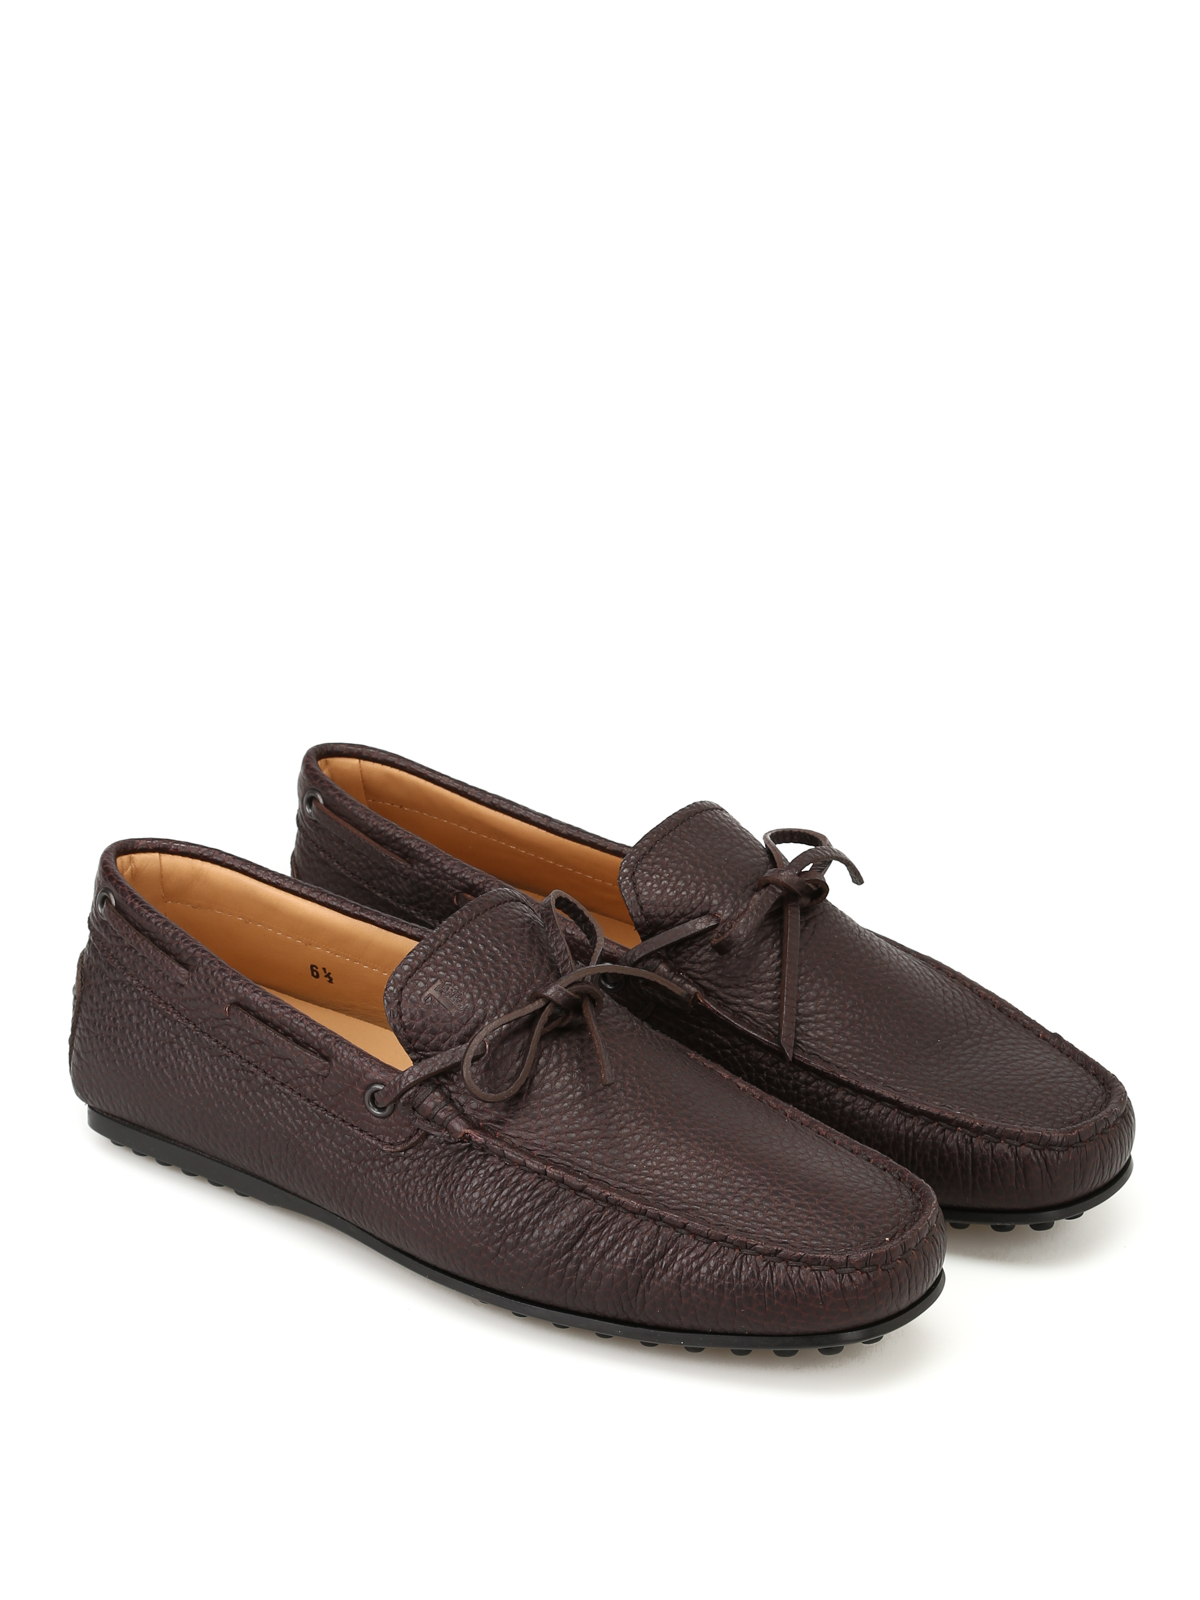 7f3cc0e2d1d Tod S - City Gommino coffee leather loafers - Loafers   Slippers ...